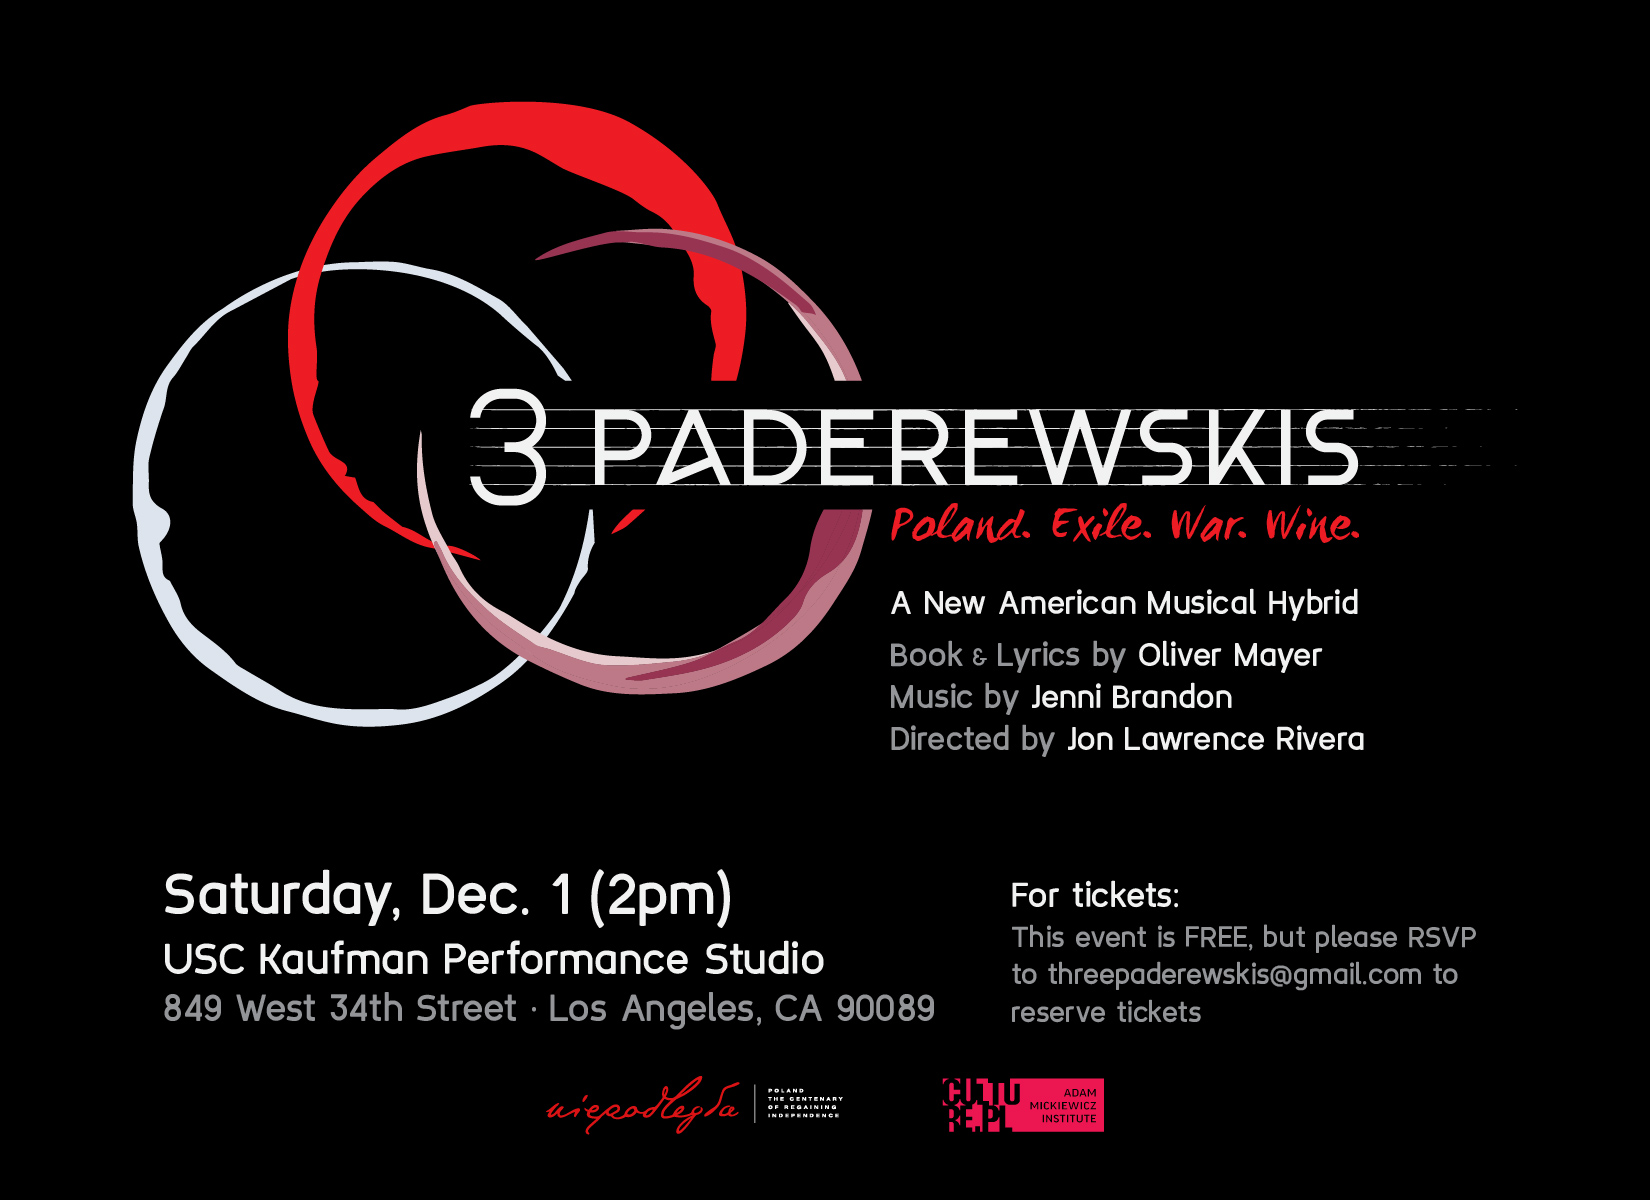 THREE PADEREWSKIS: A New American Musical Hybrid – New Video